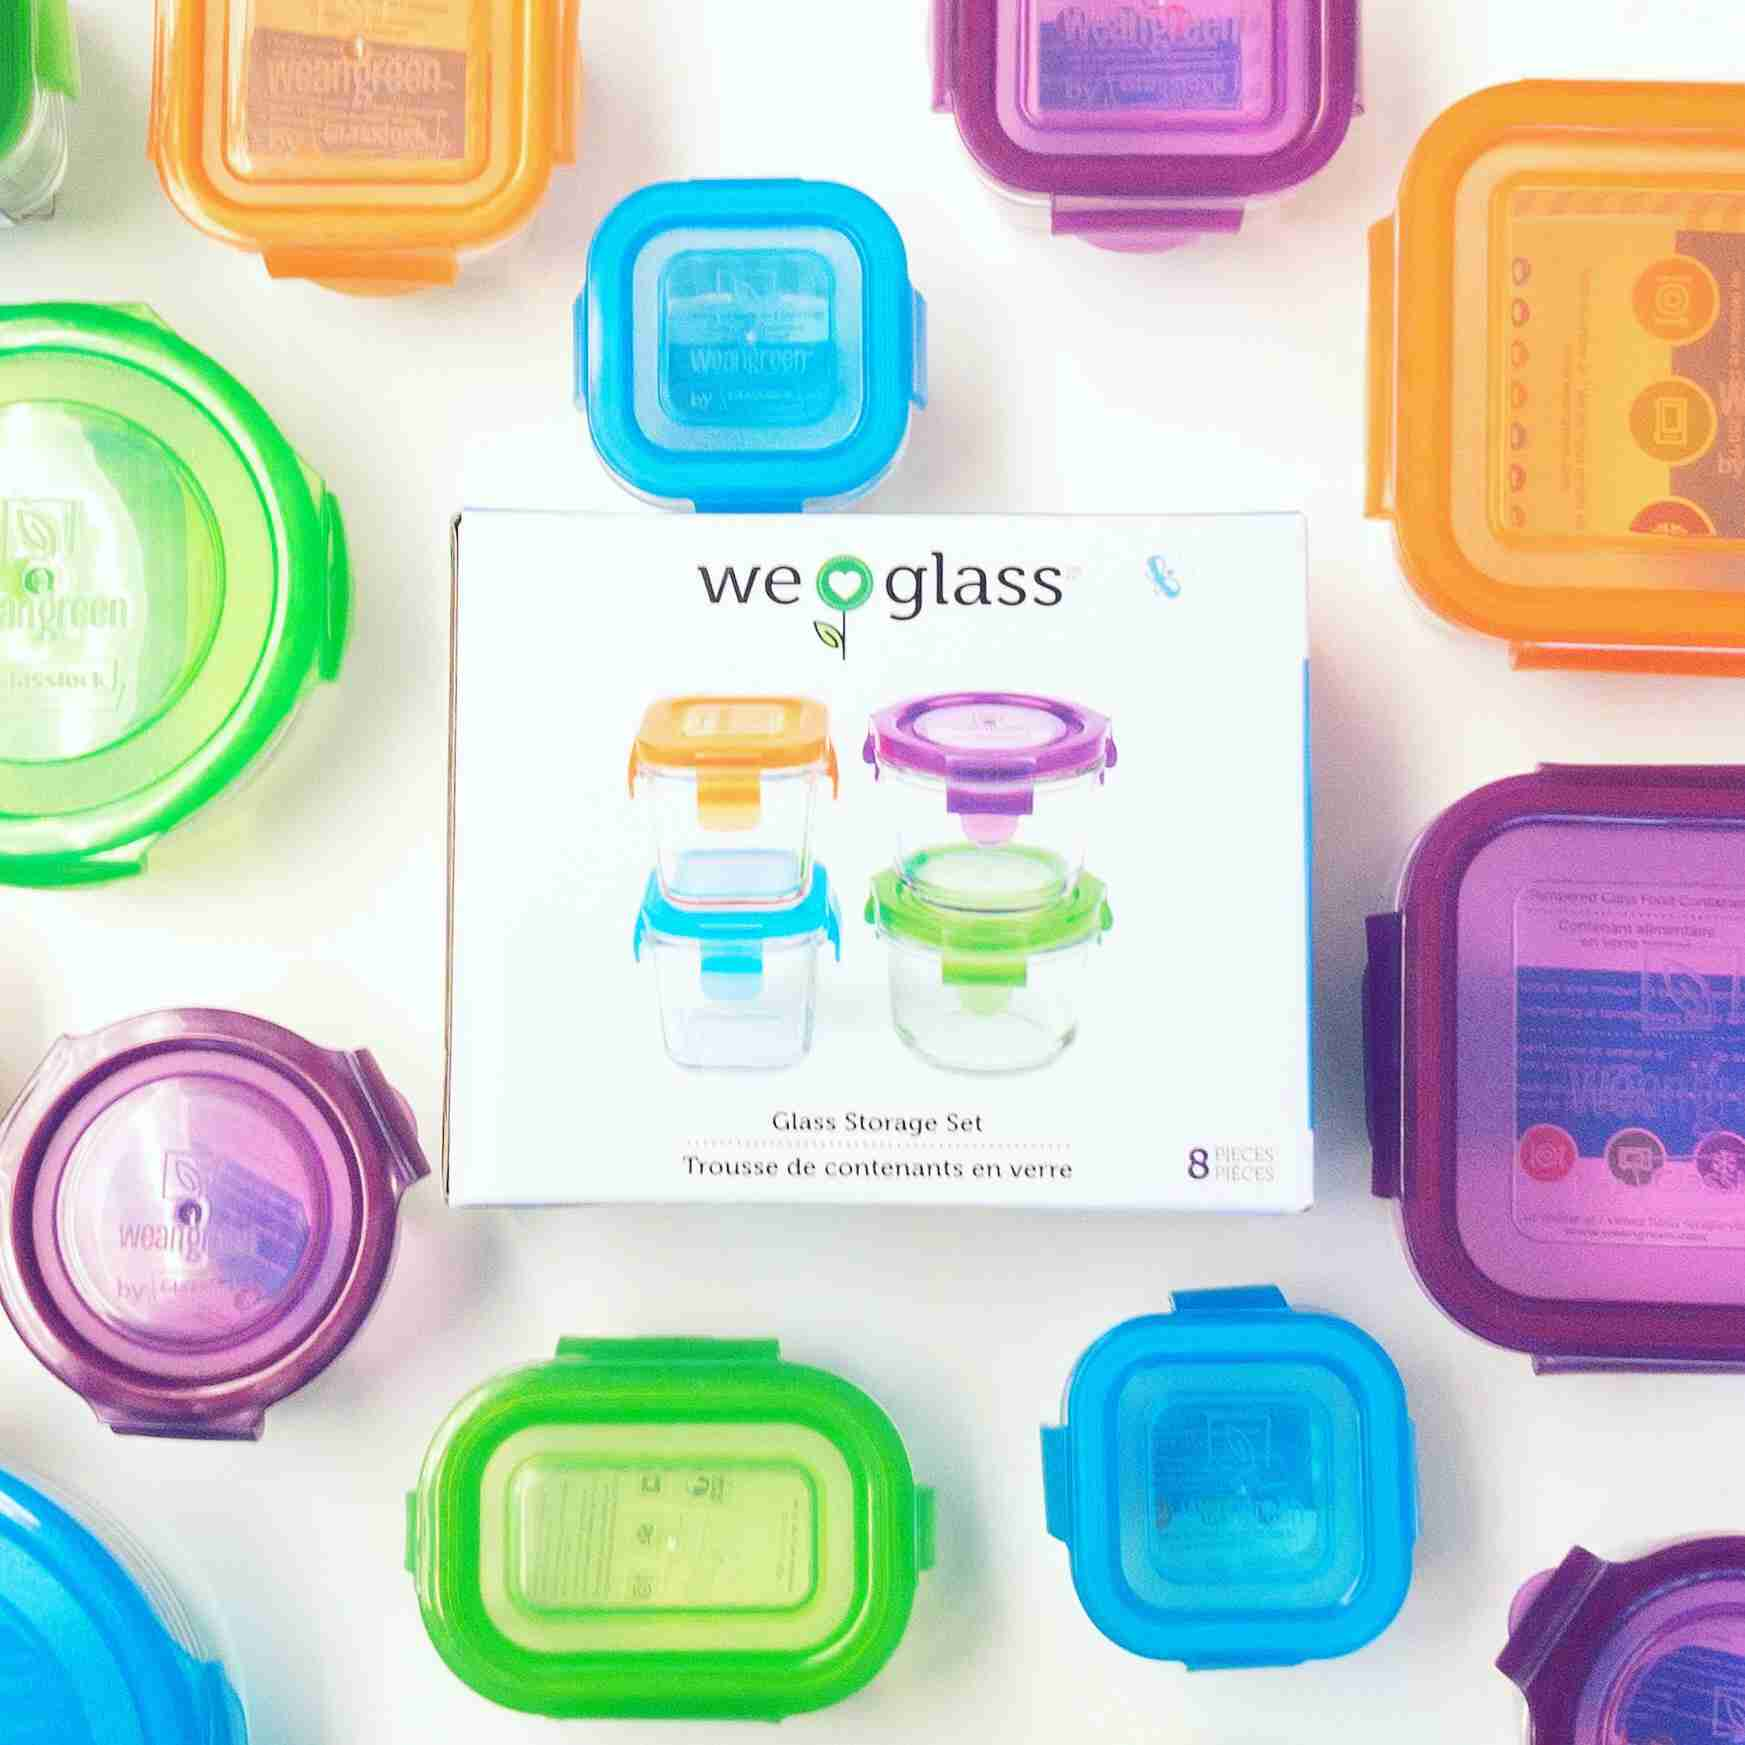 Wean Green - We Love Glass